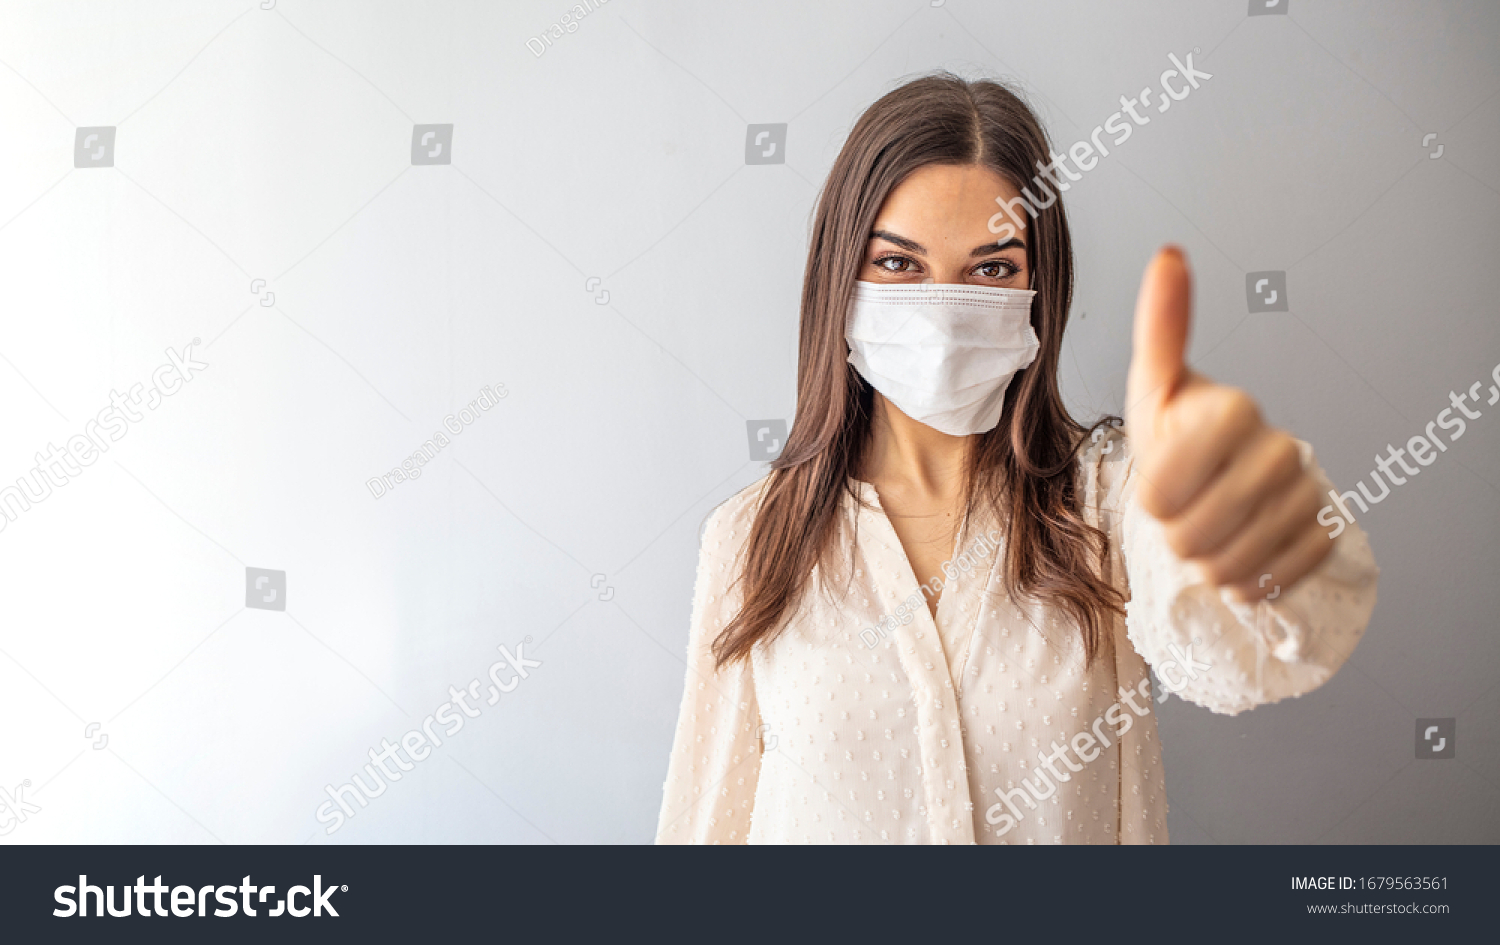 Beautiful caucasian young woman with disposable face mask. Protection versus viruses and infection. Studio portrait, concept with white background. Woman showing thumb up.  #1679563561